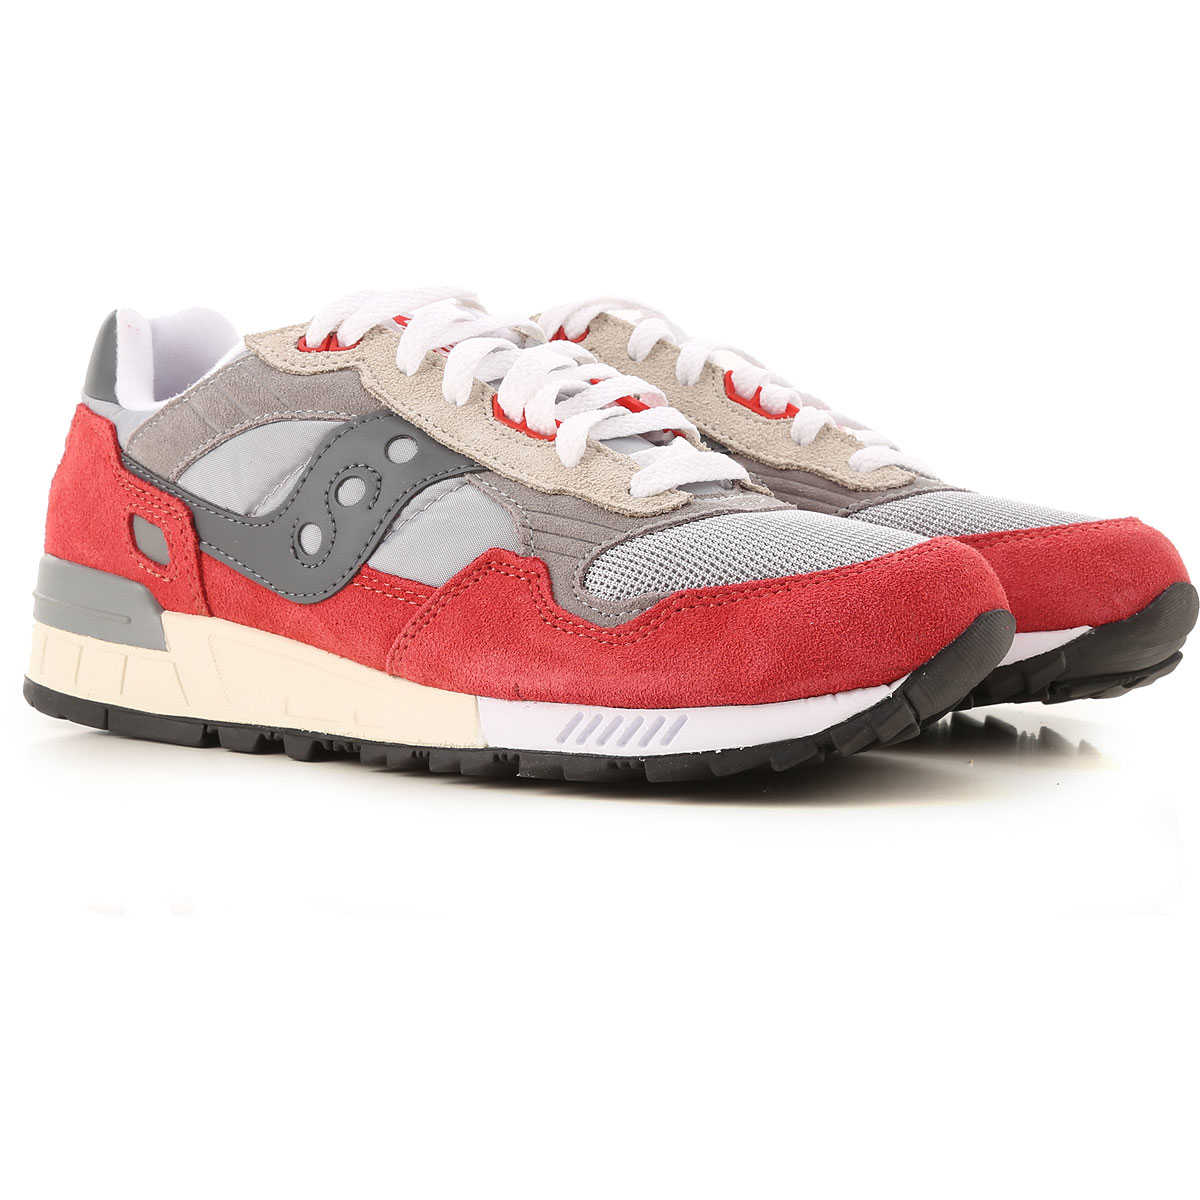 Saucony Sneakers for Men On Sale Light Grey SE - GOOFASH